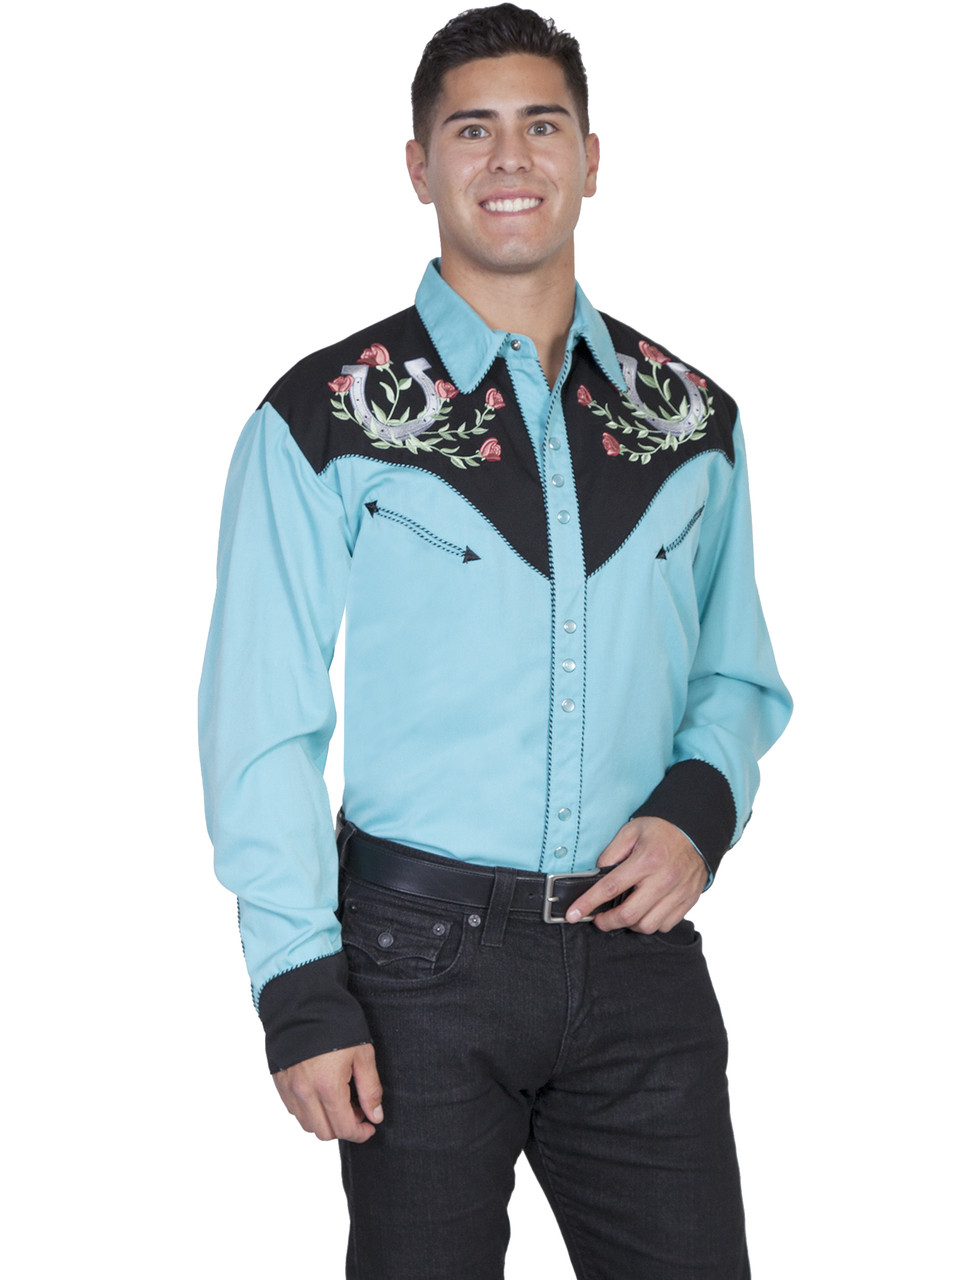 00a6c528d35204 P-660 Scully Rose & Horseshoe Embroidered Retro Western Shirt - Brantleys  Western & Casual Wear